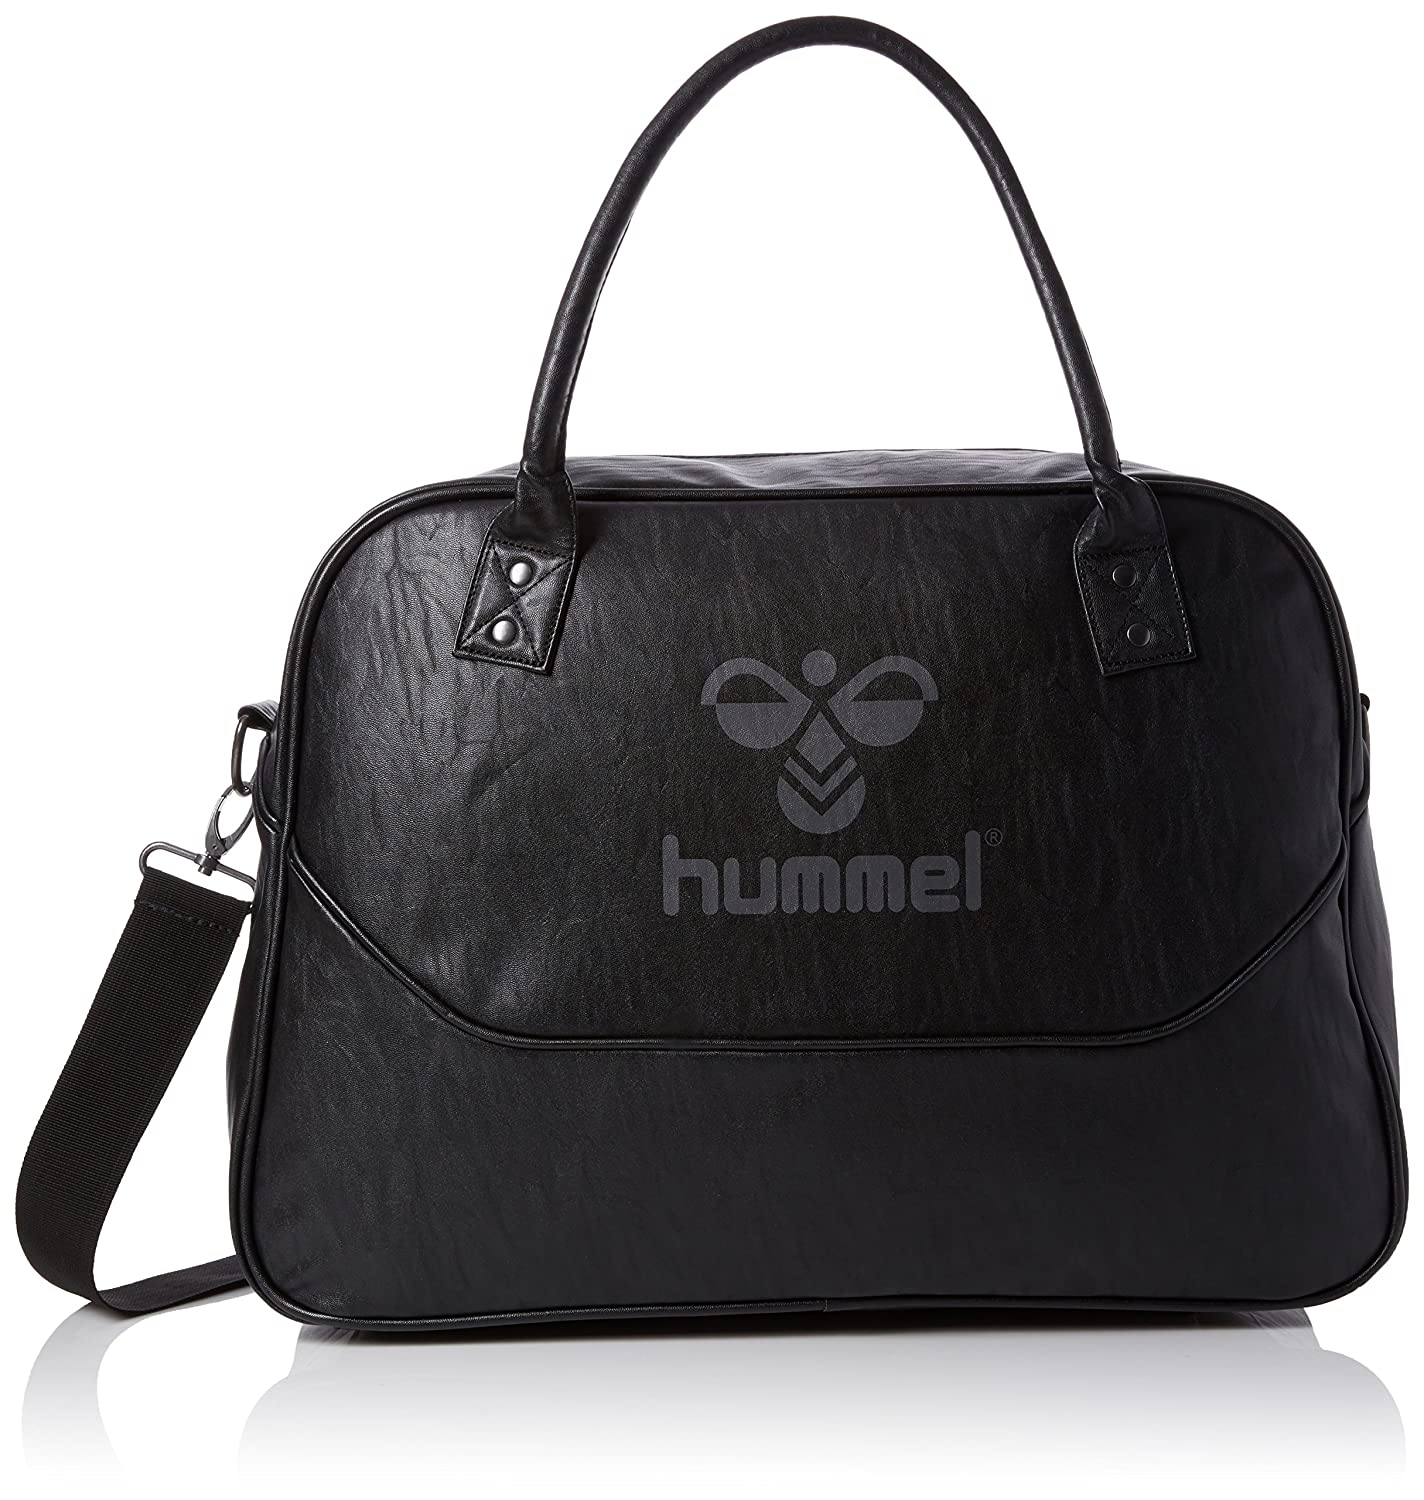 Hummel Lugo Big Weekend Bag 303e35a11a1b6